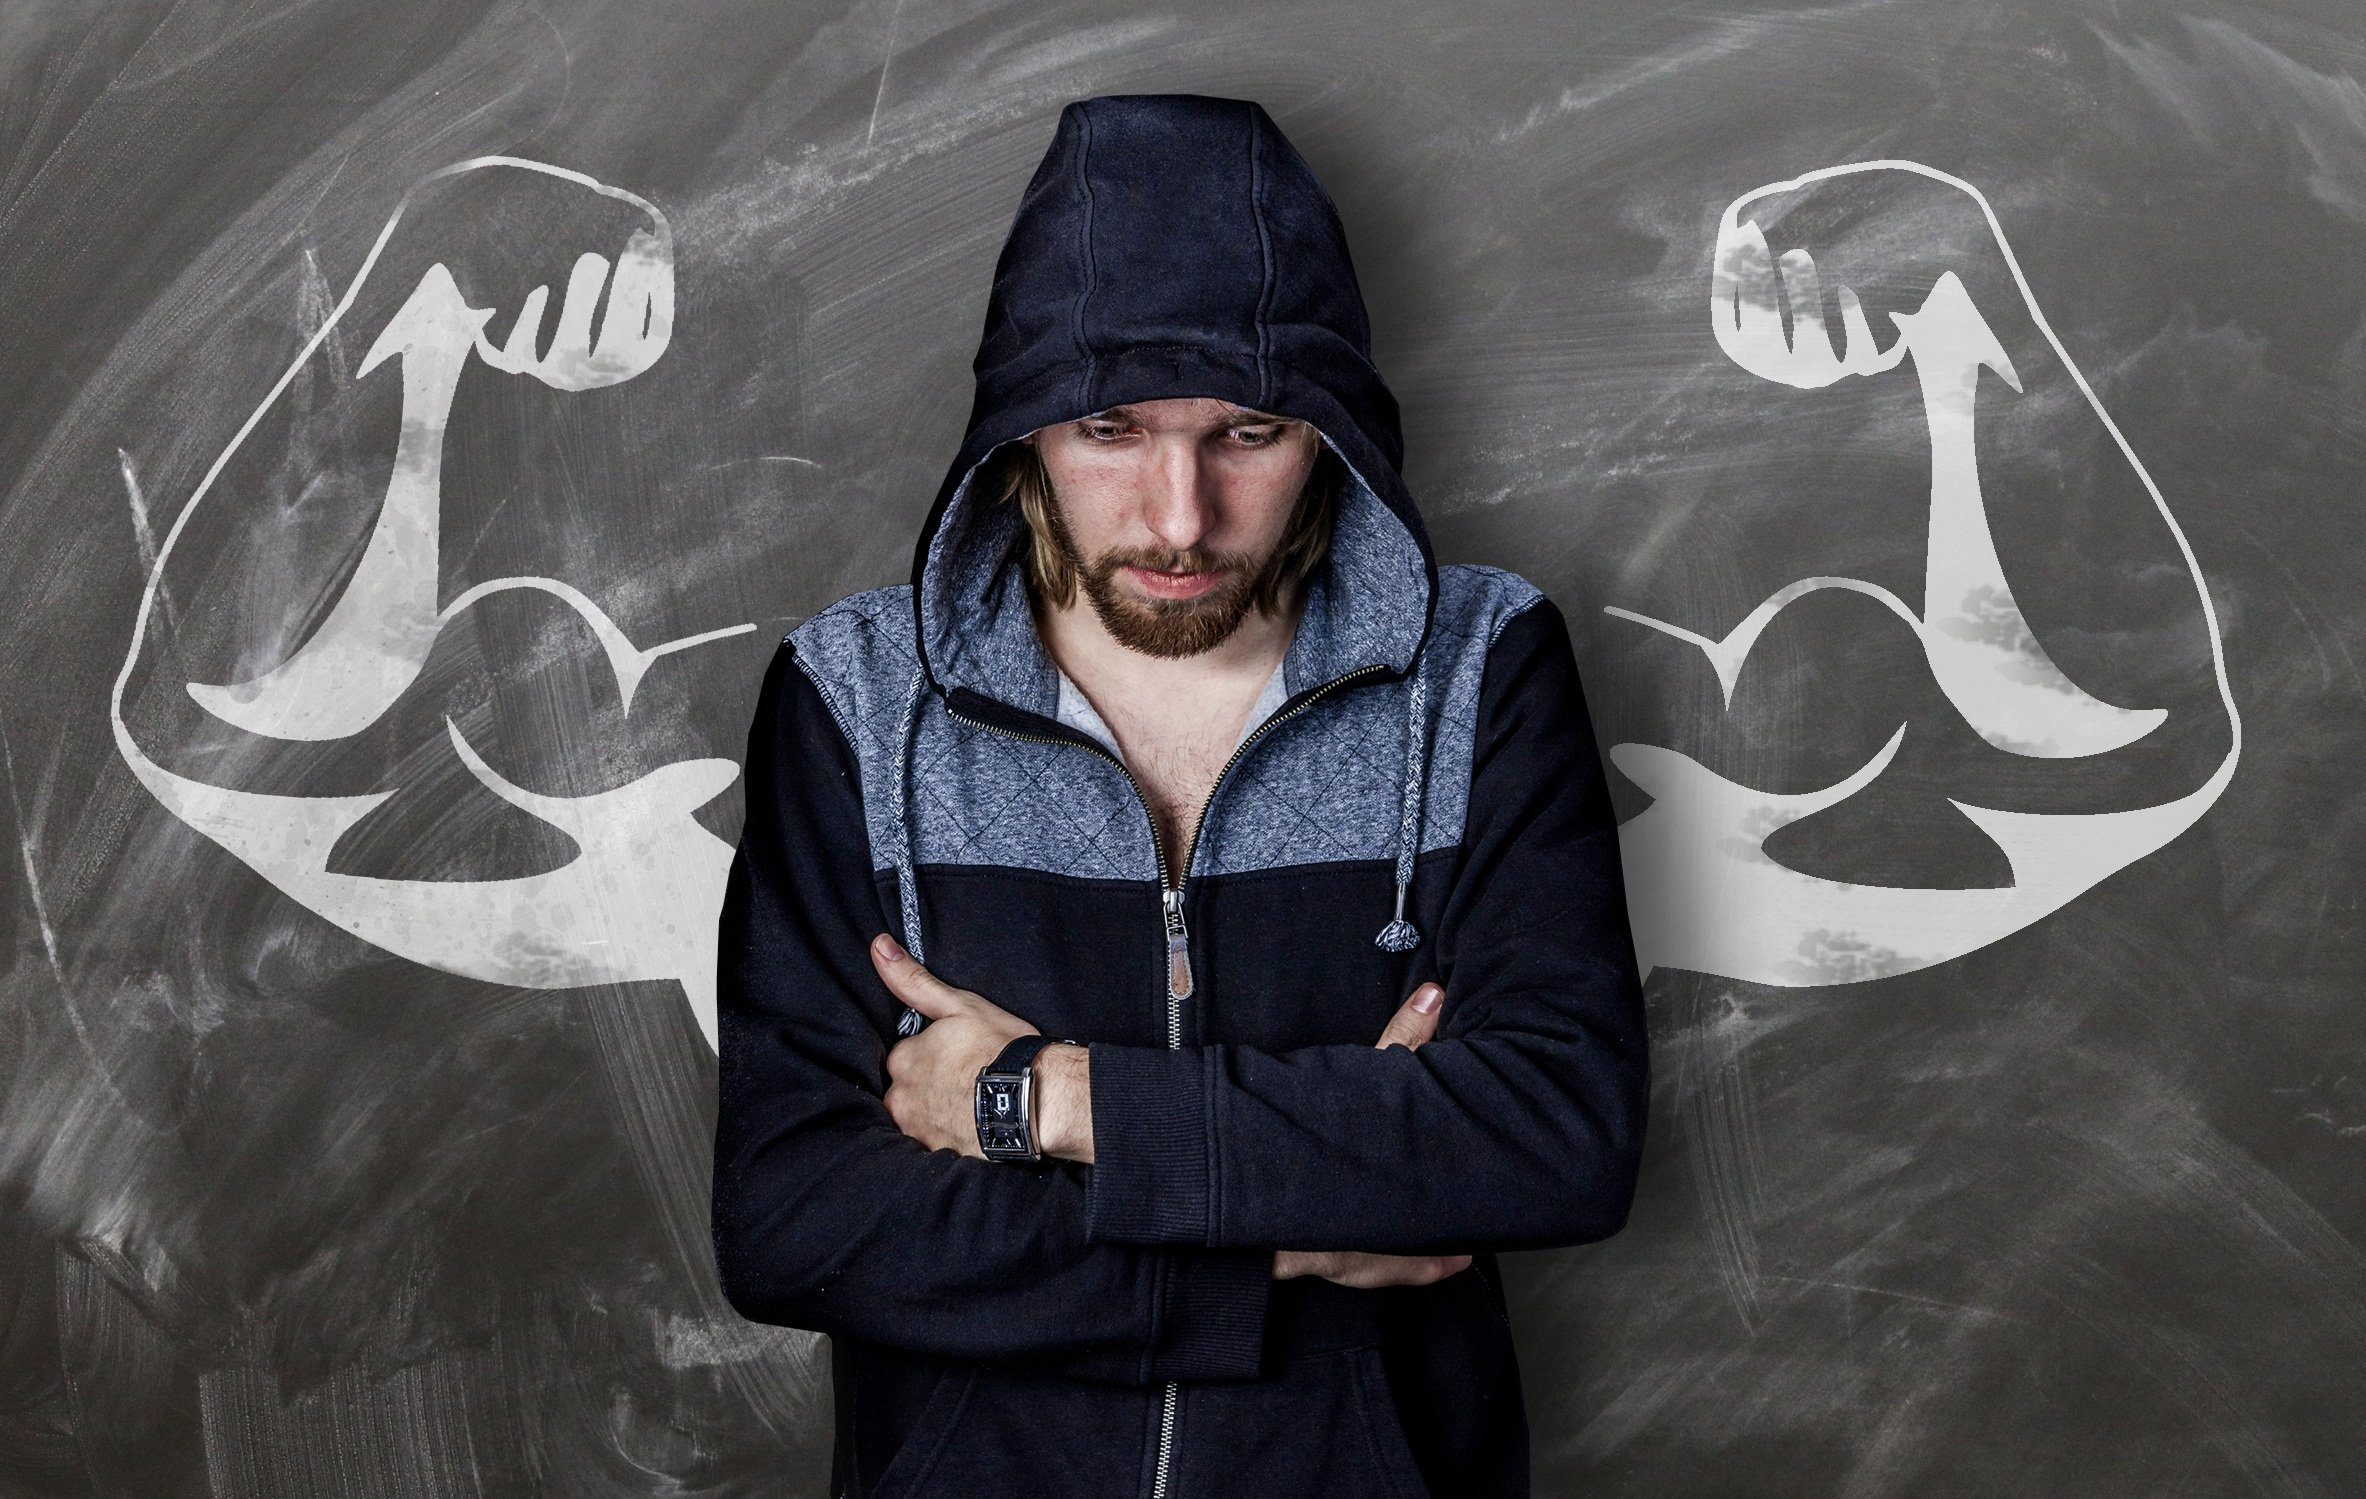 man with muscles standing up